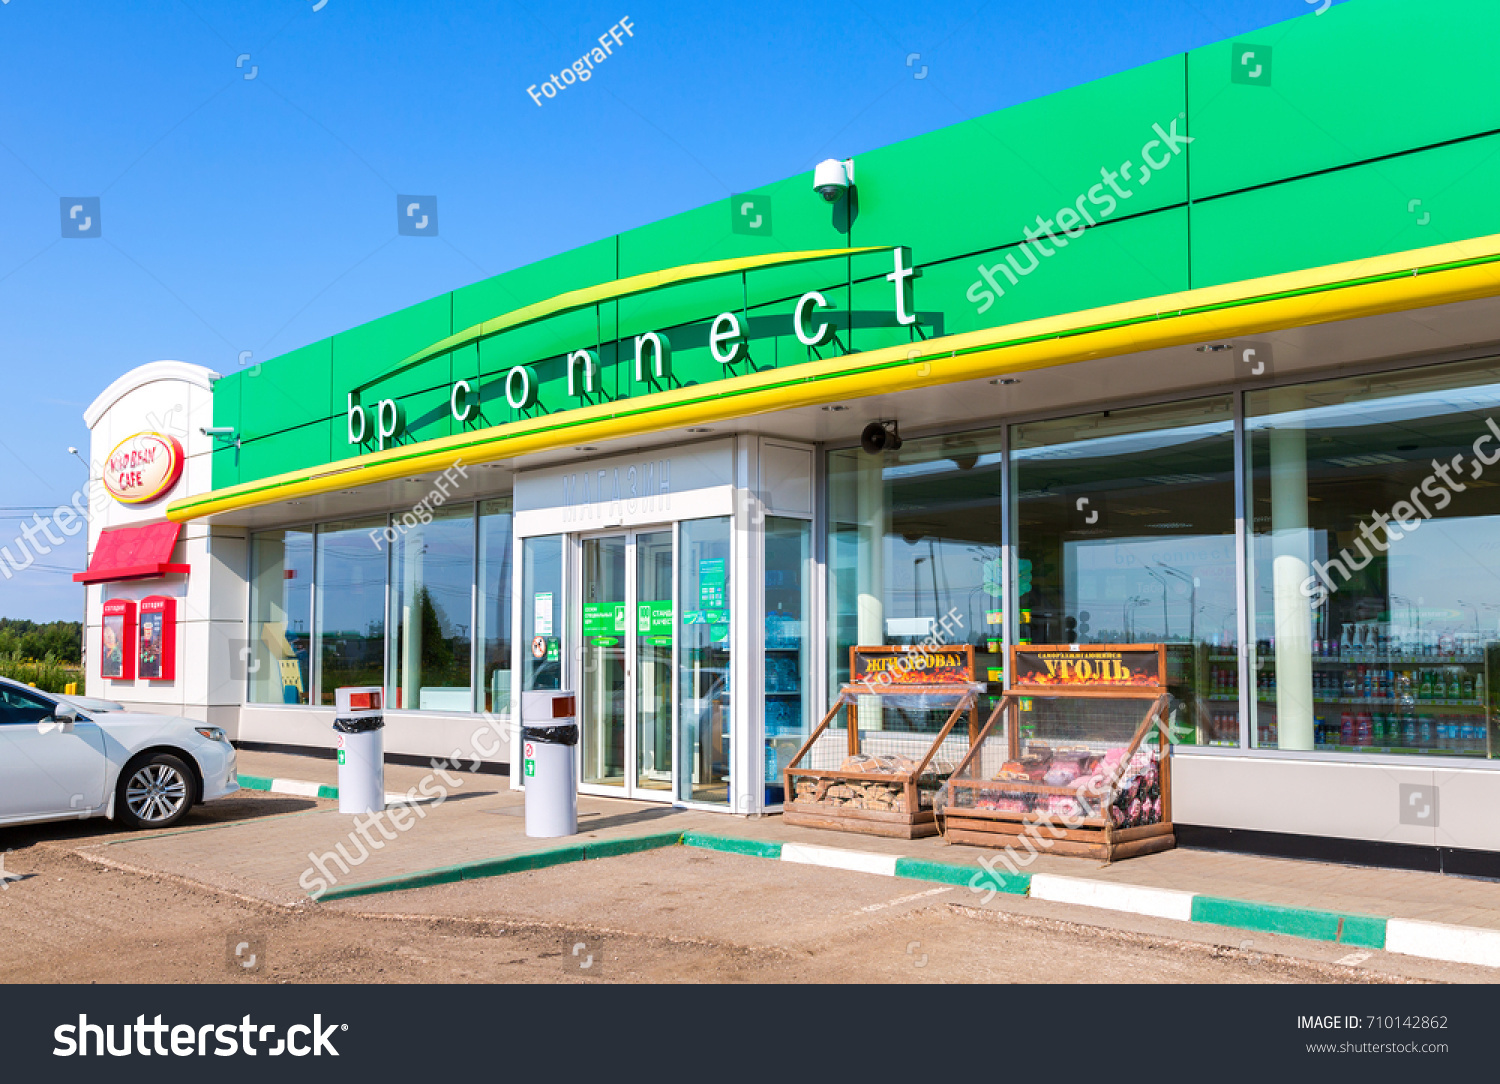 novgorod region russia stock photo  novgorod region russia 17 2017 bp or british petroleum gas station